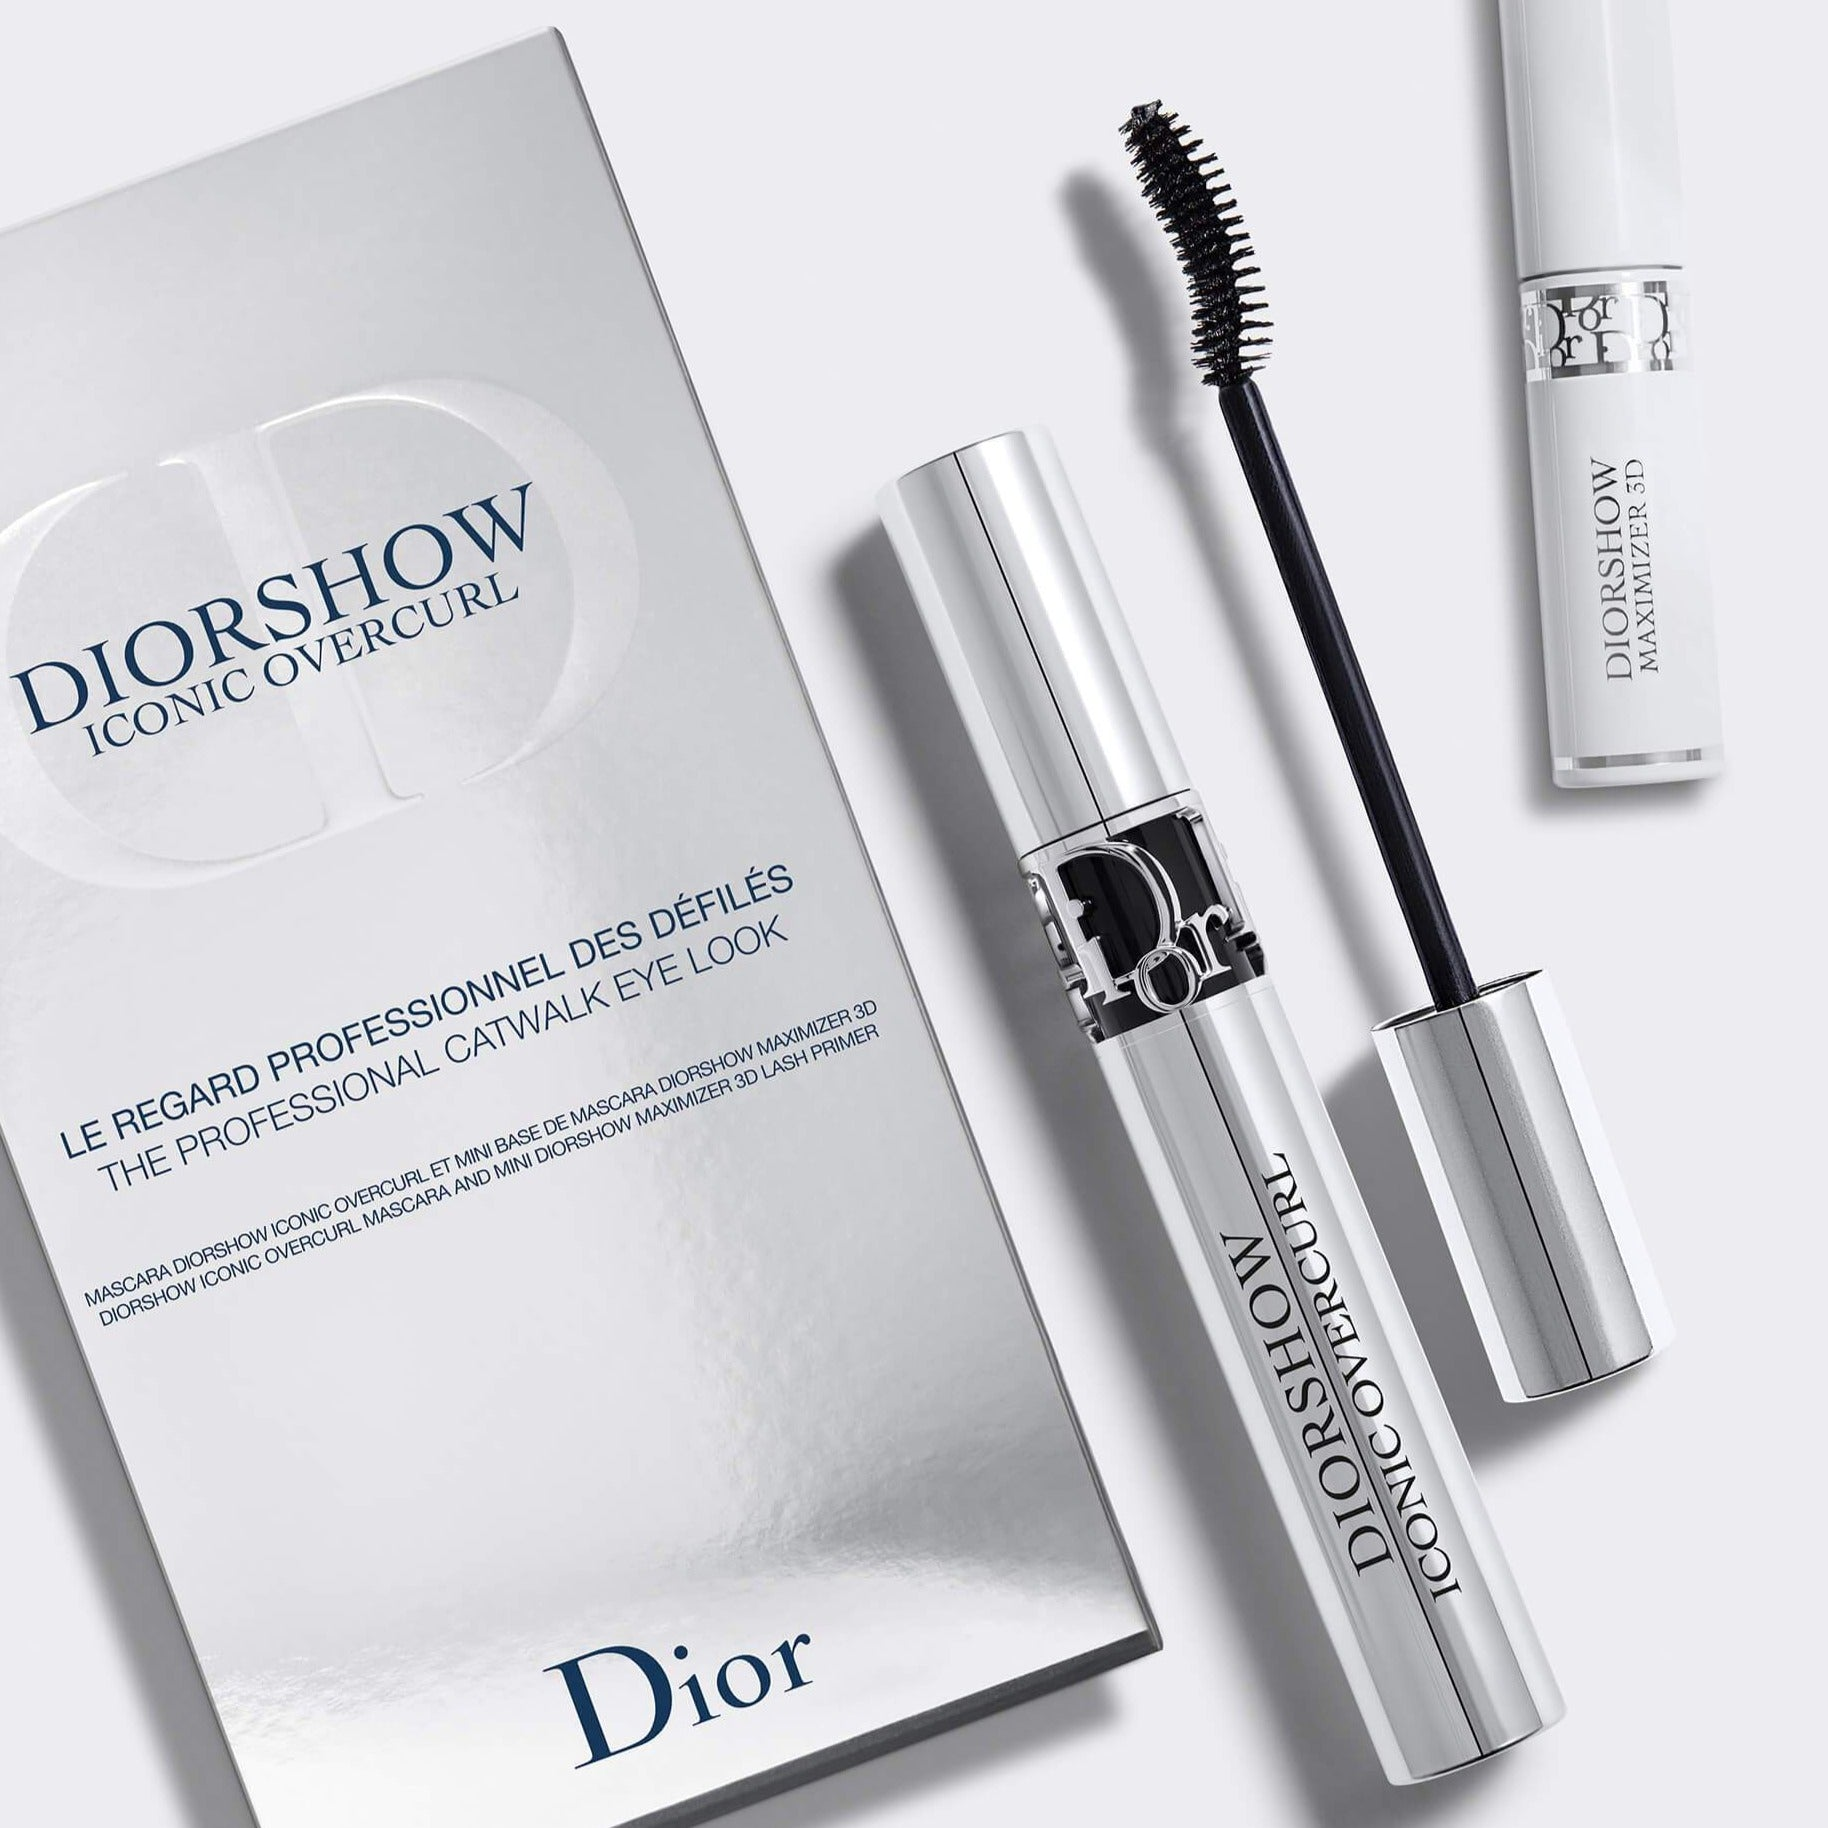 DIORSHOW ICONIC OVERCURL | Mascara and lash primer-serum set